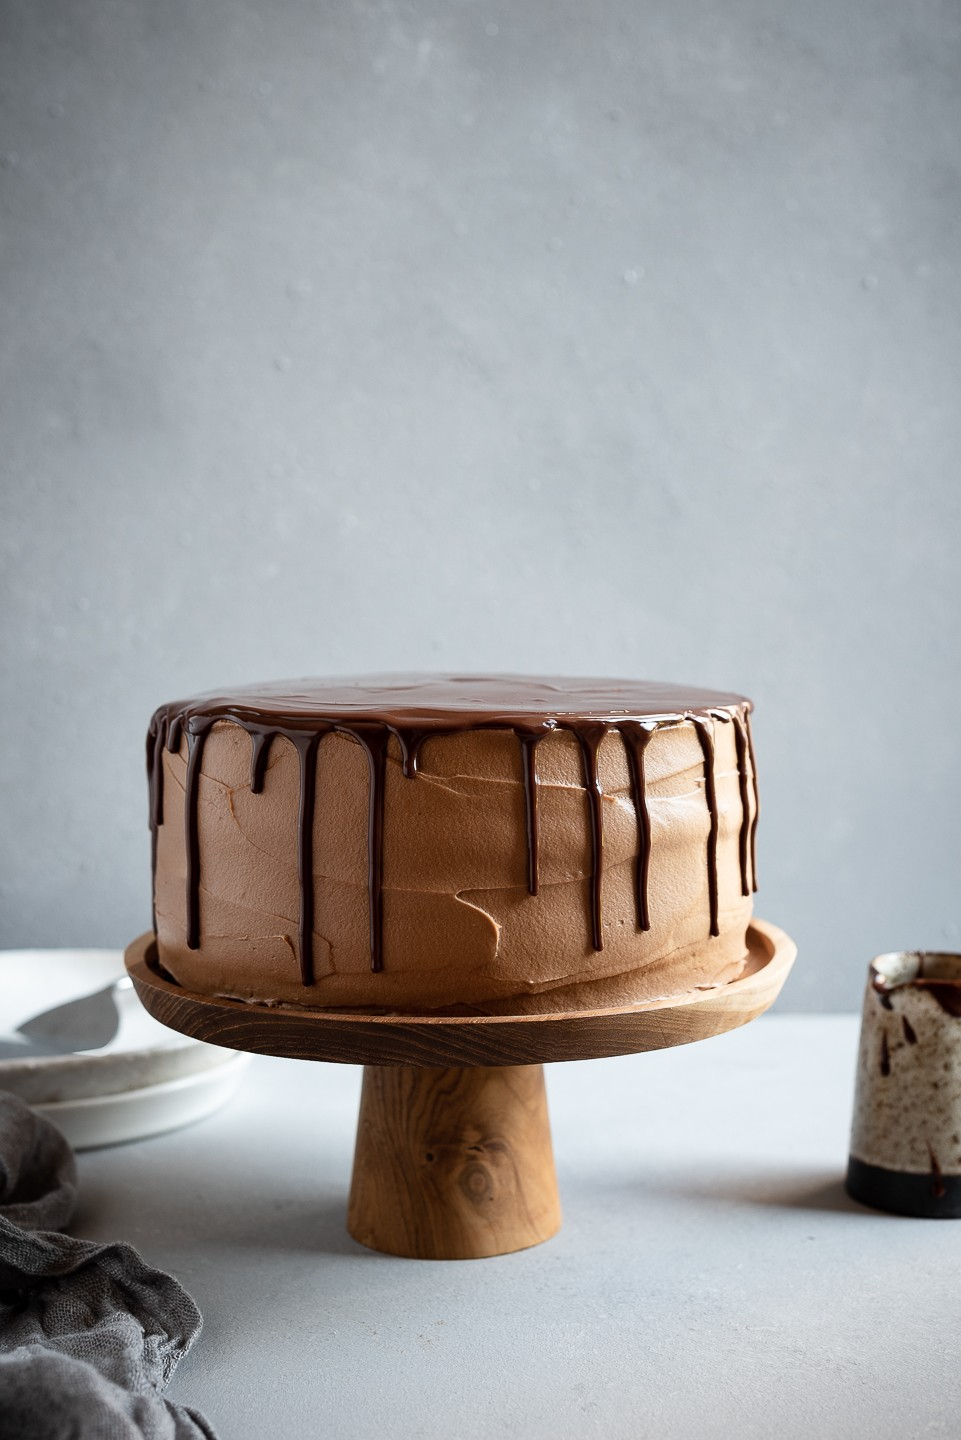 Chocolate mousse cake with cloud frosting